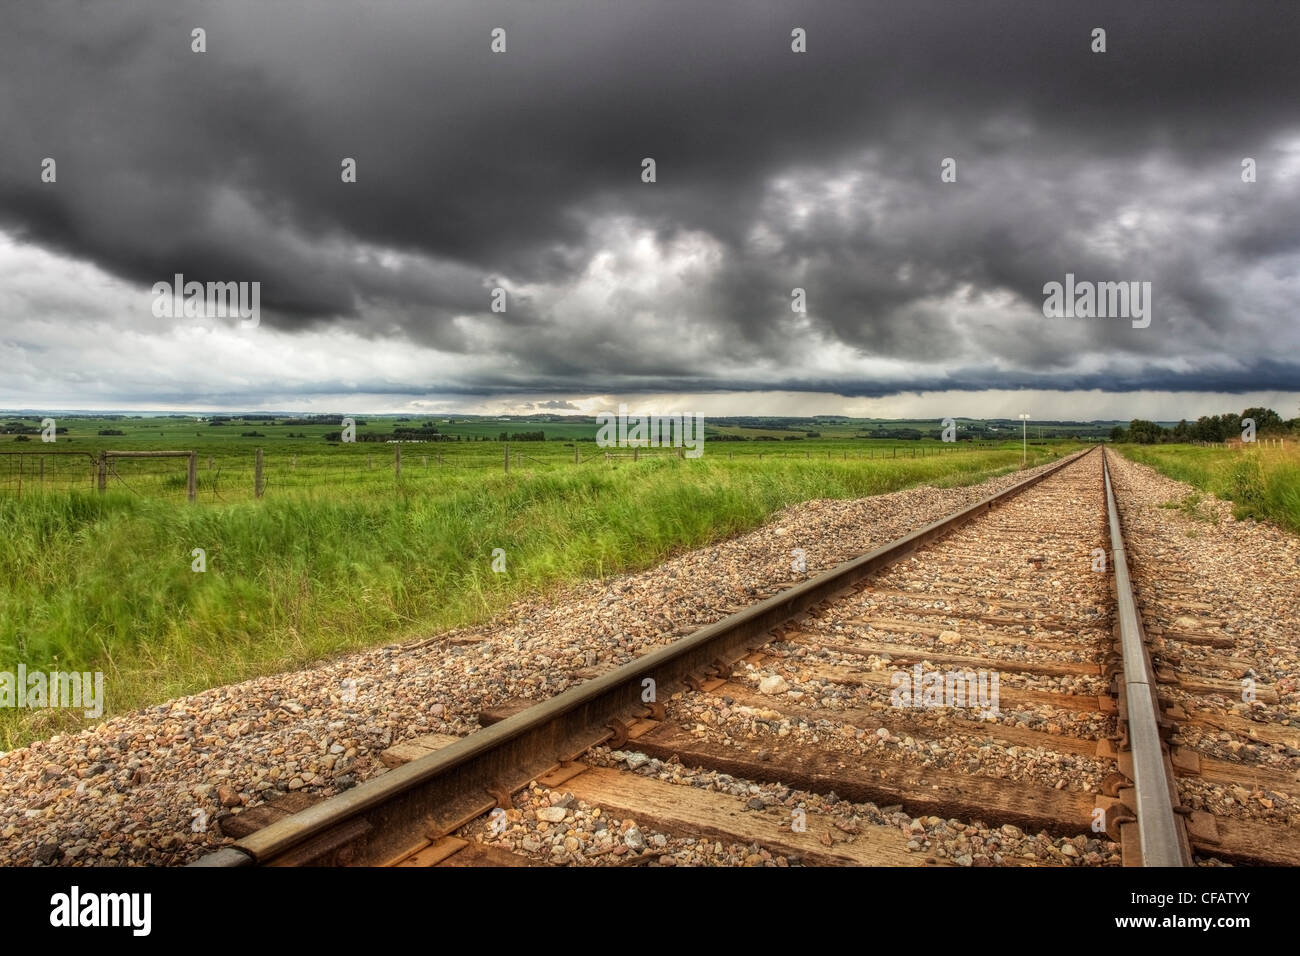 Railroad tracks with storm clouds in the background near Didsbury, Alberta, Canada - Stock Image